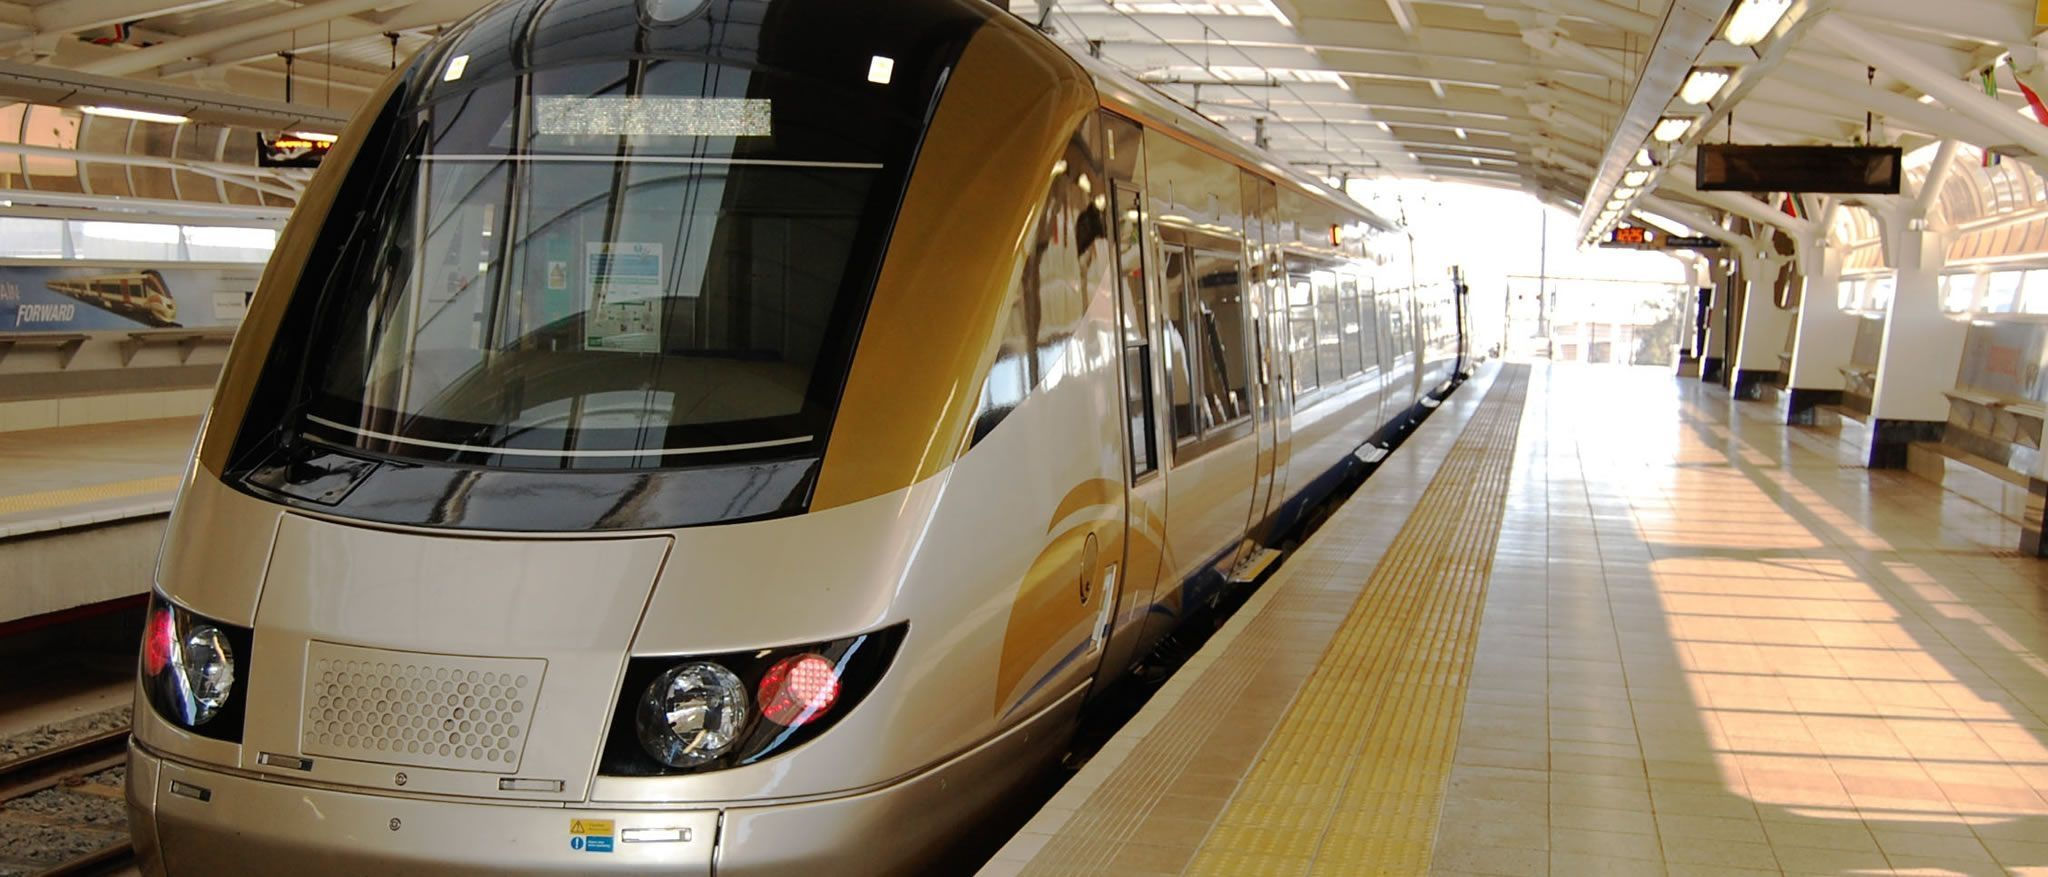 Gautrain train from and to Pretoria and Johannesburg